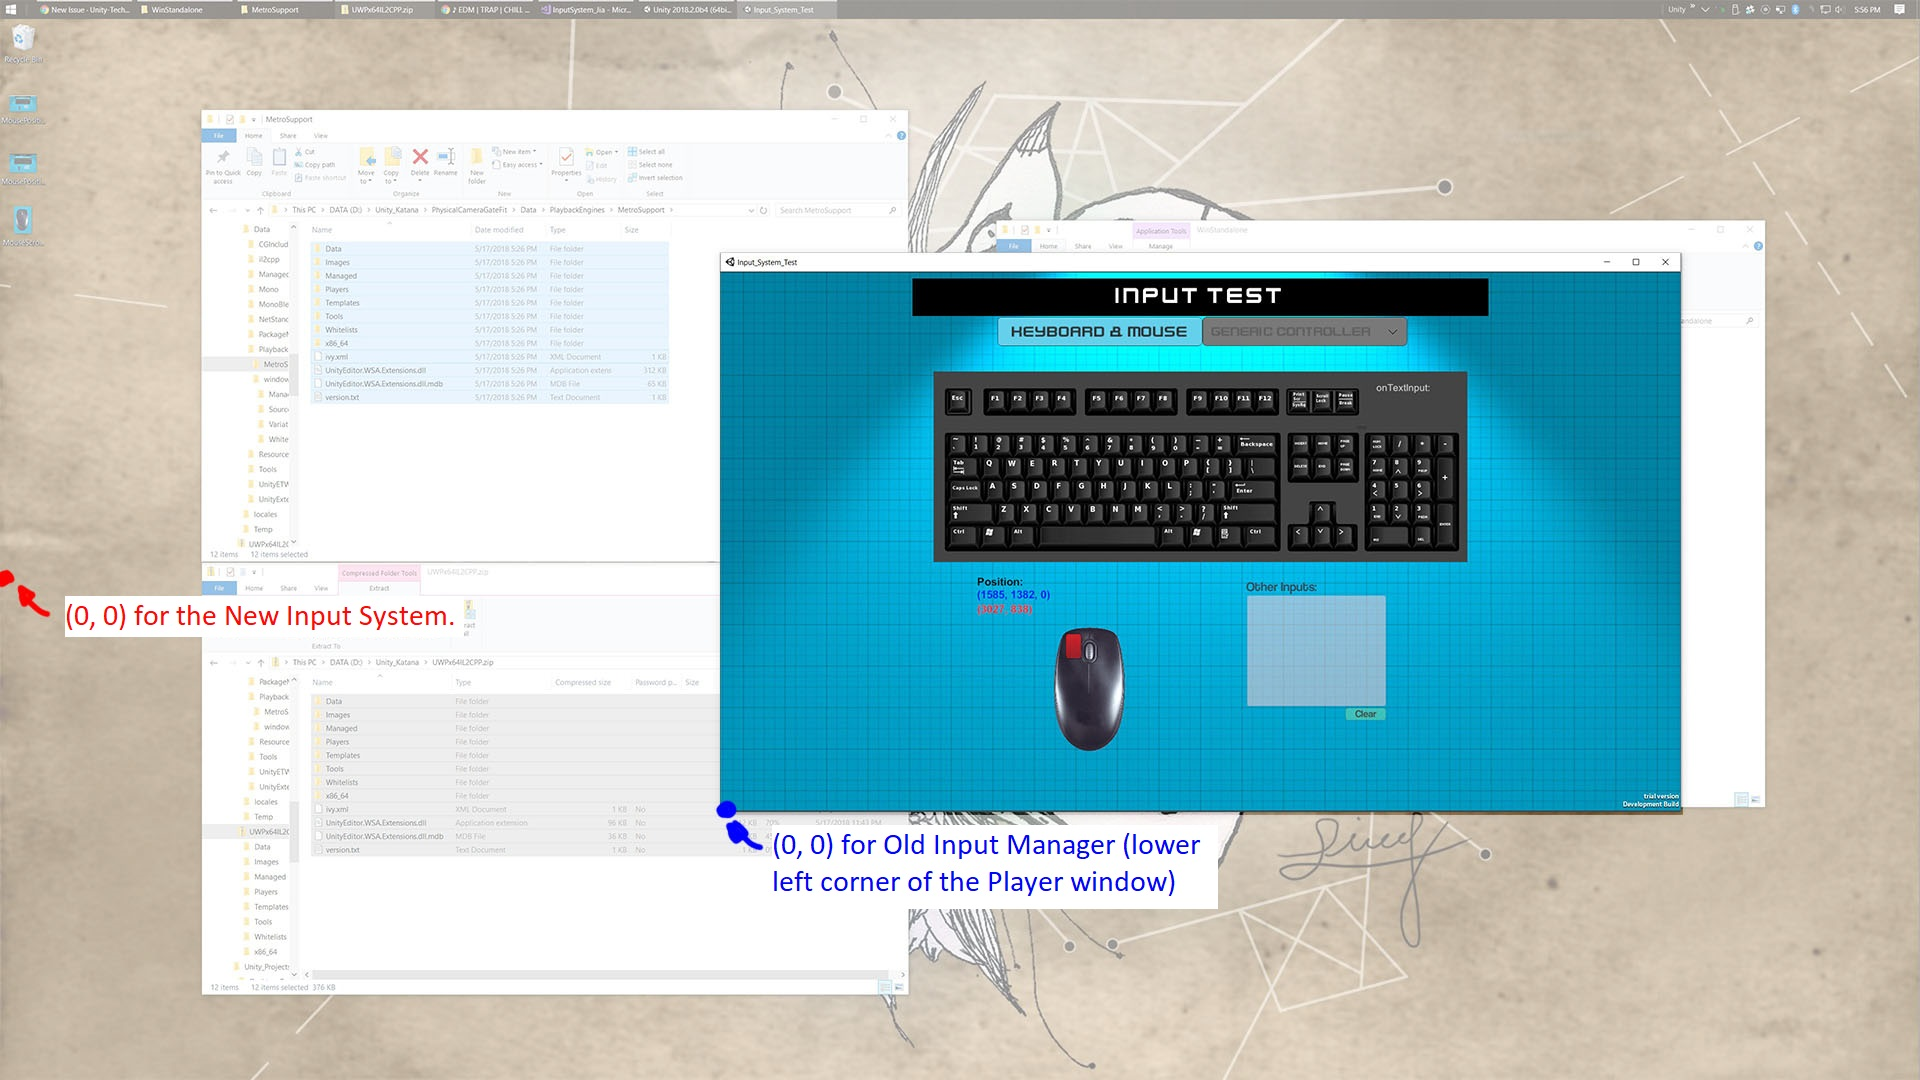 Windows Standalone] The origin of the mouse position is not